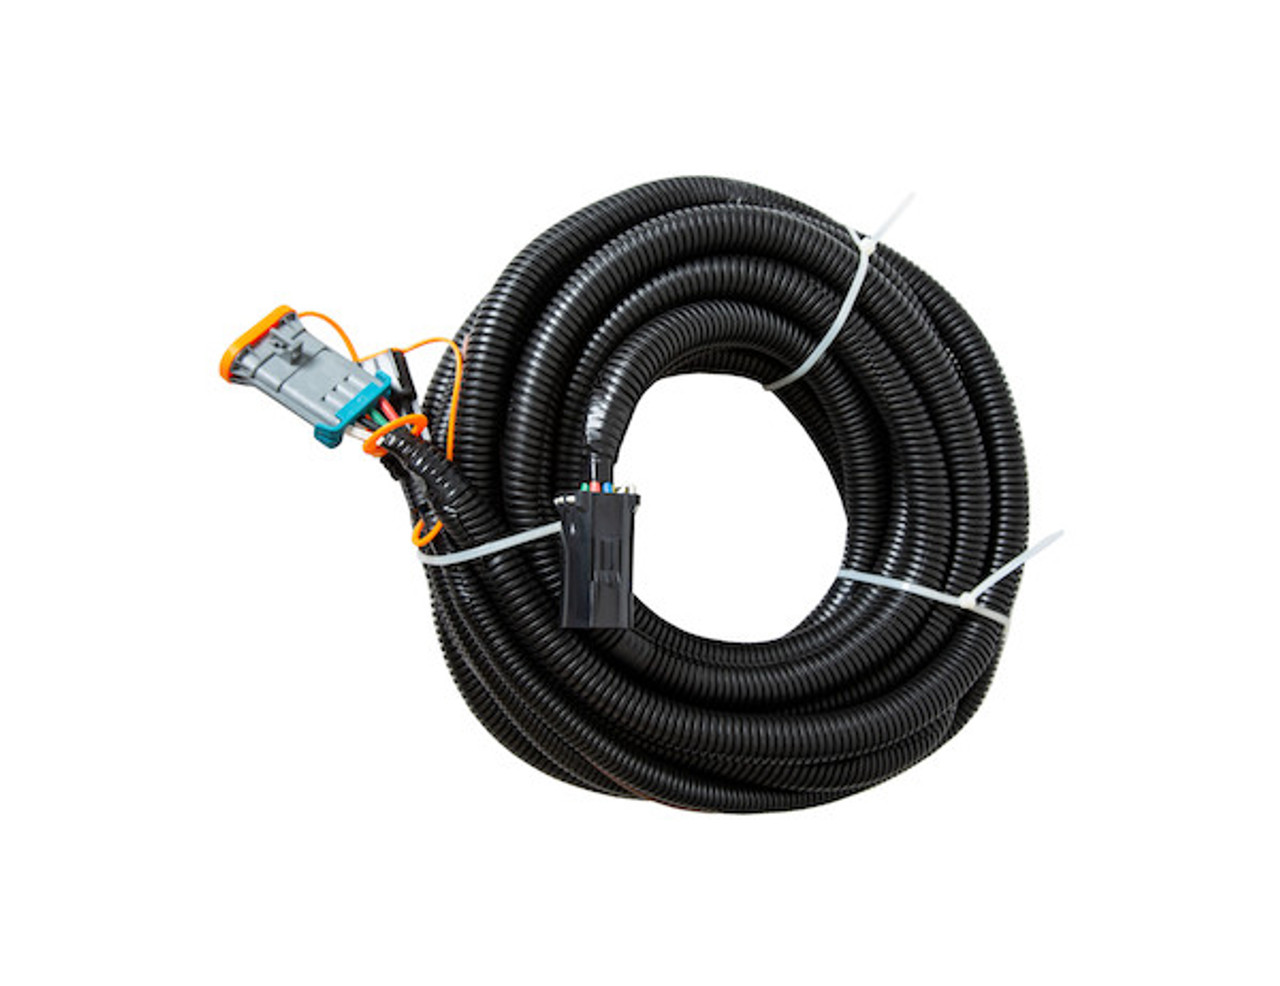 Buyers 3006724 Replacement Main Wire Harness For SaltDogg SHPE 0750-2000 Series Spreaders 1